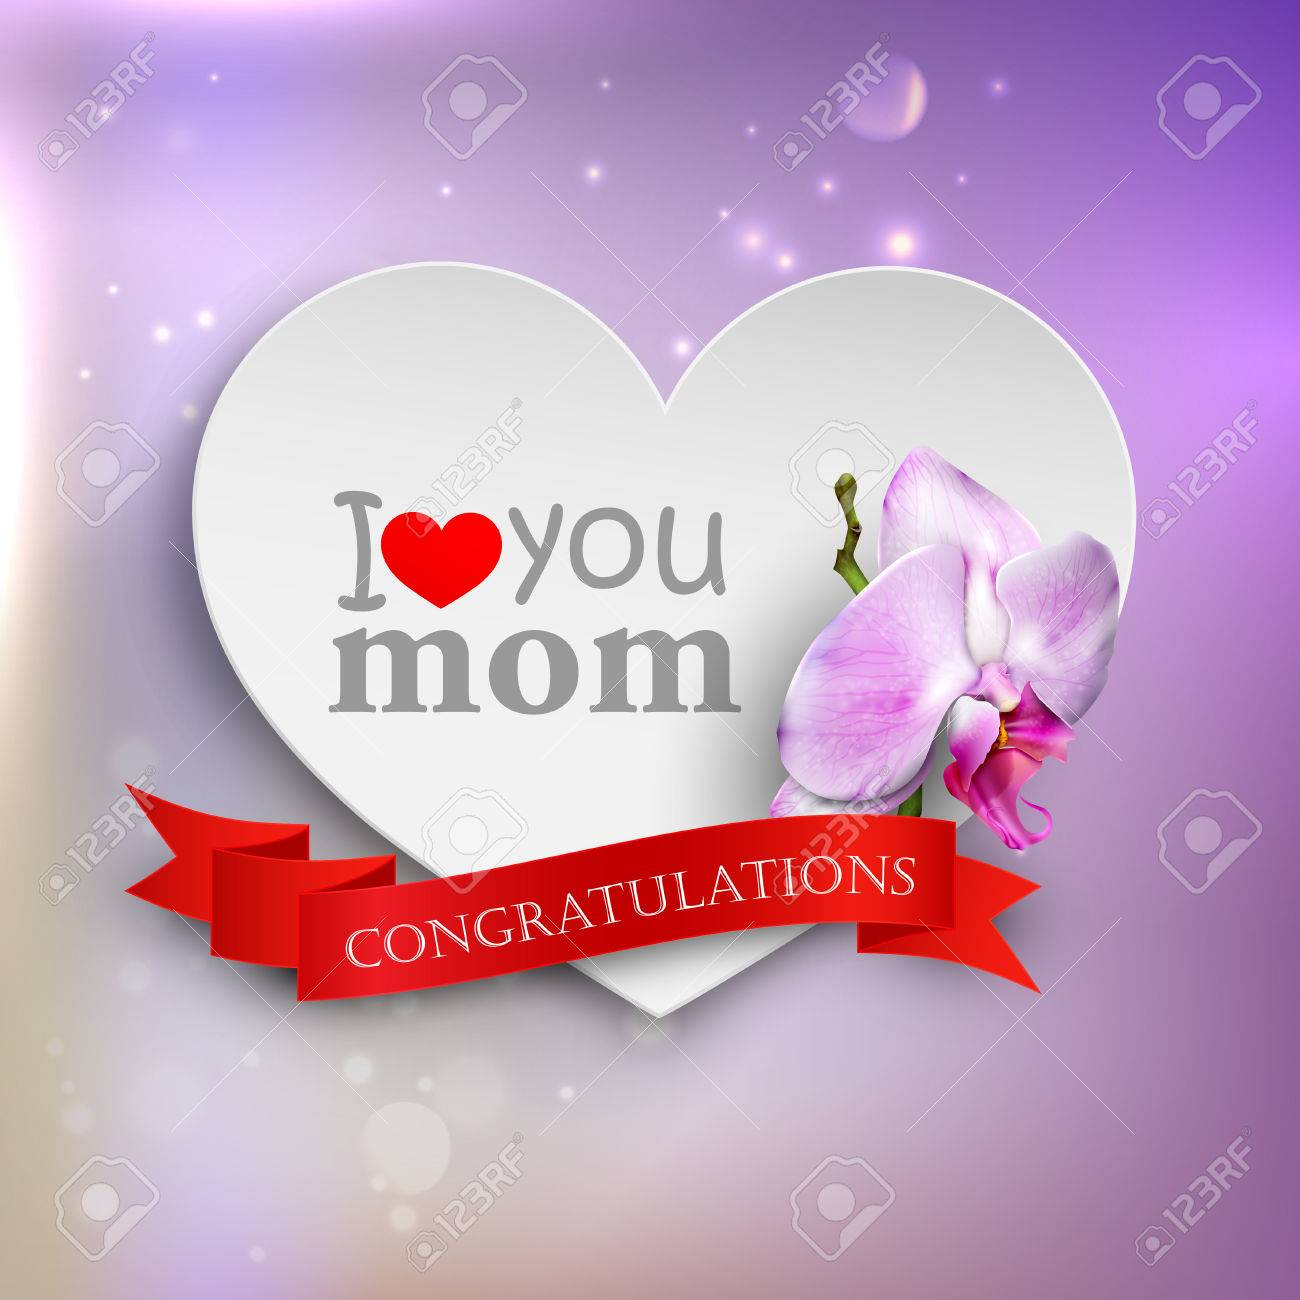 i love you mom abstract holiday background with paper hearts orchid flower and ribbon mothers: day orchid decor